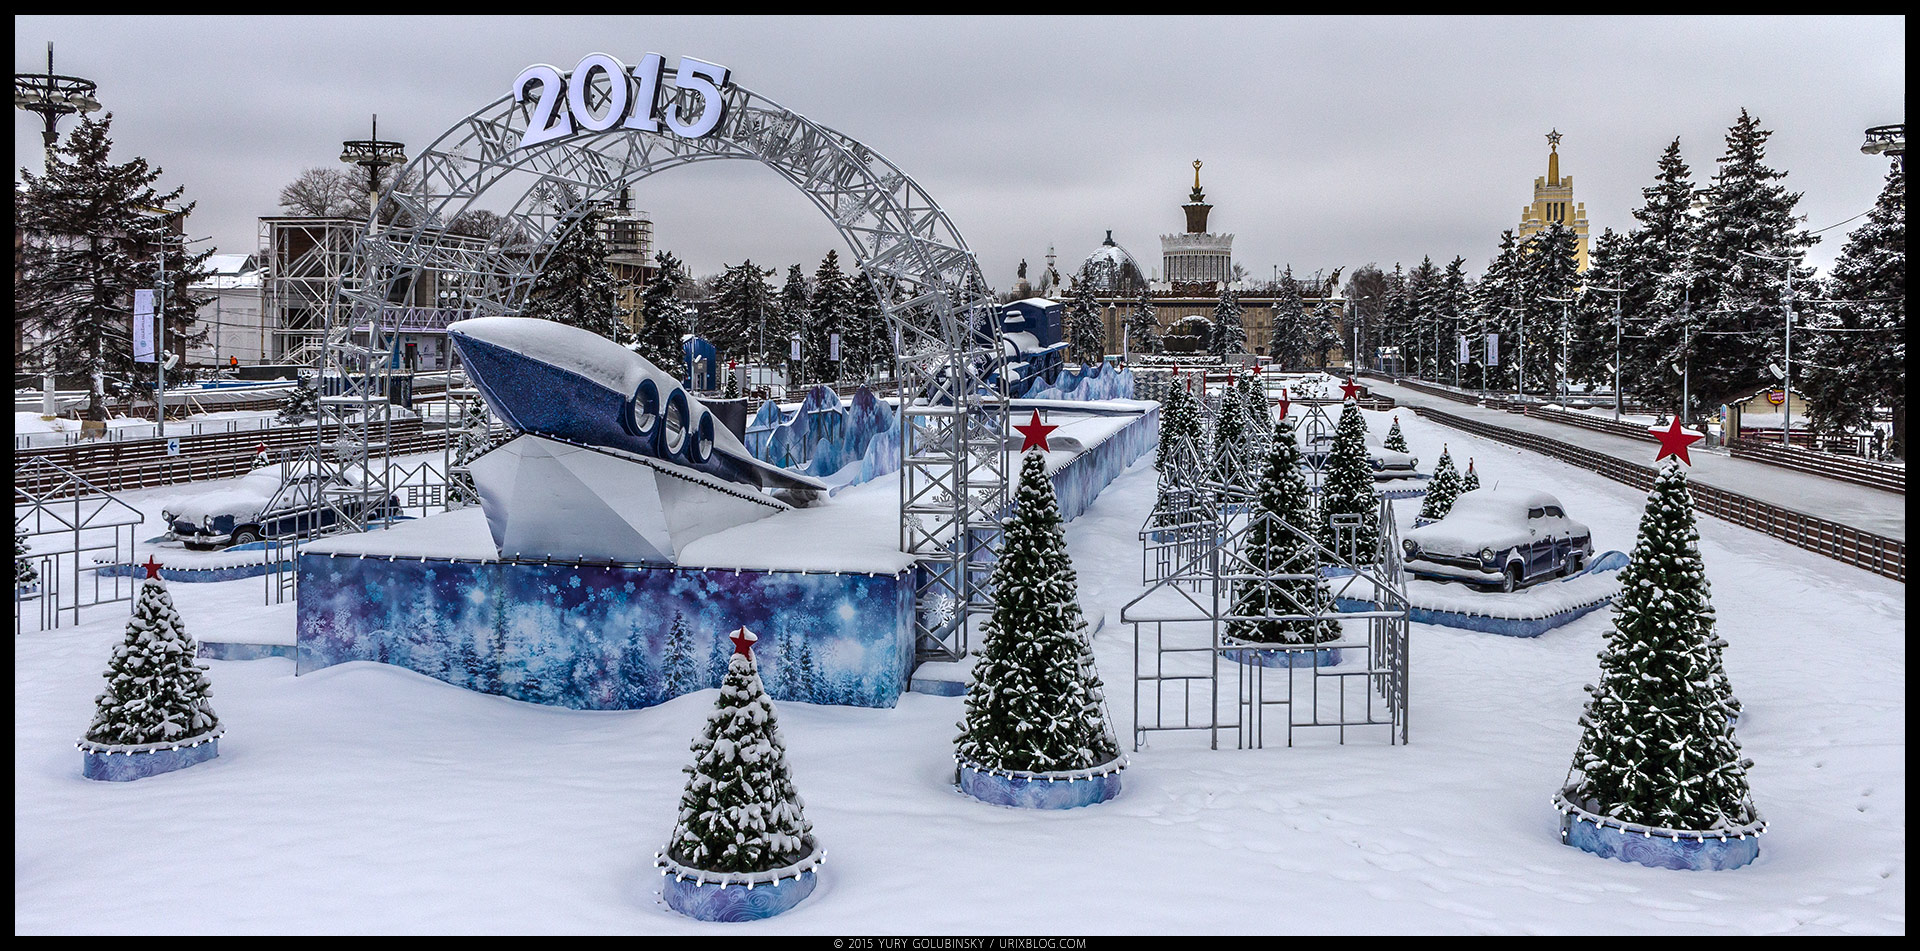 Ice skating rink, VDNKh, park, ice, snow, winter, soviet, rocket, architecture, Moscow, Russia, January, panorama, 2015